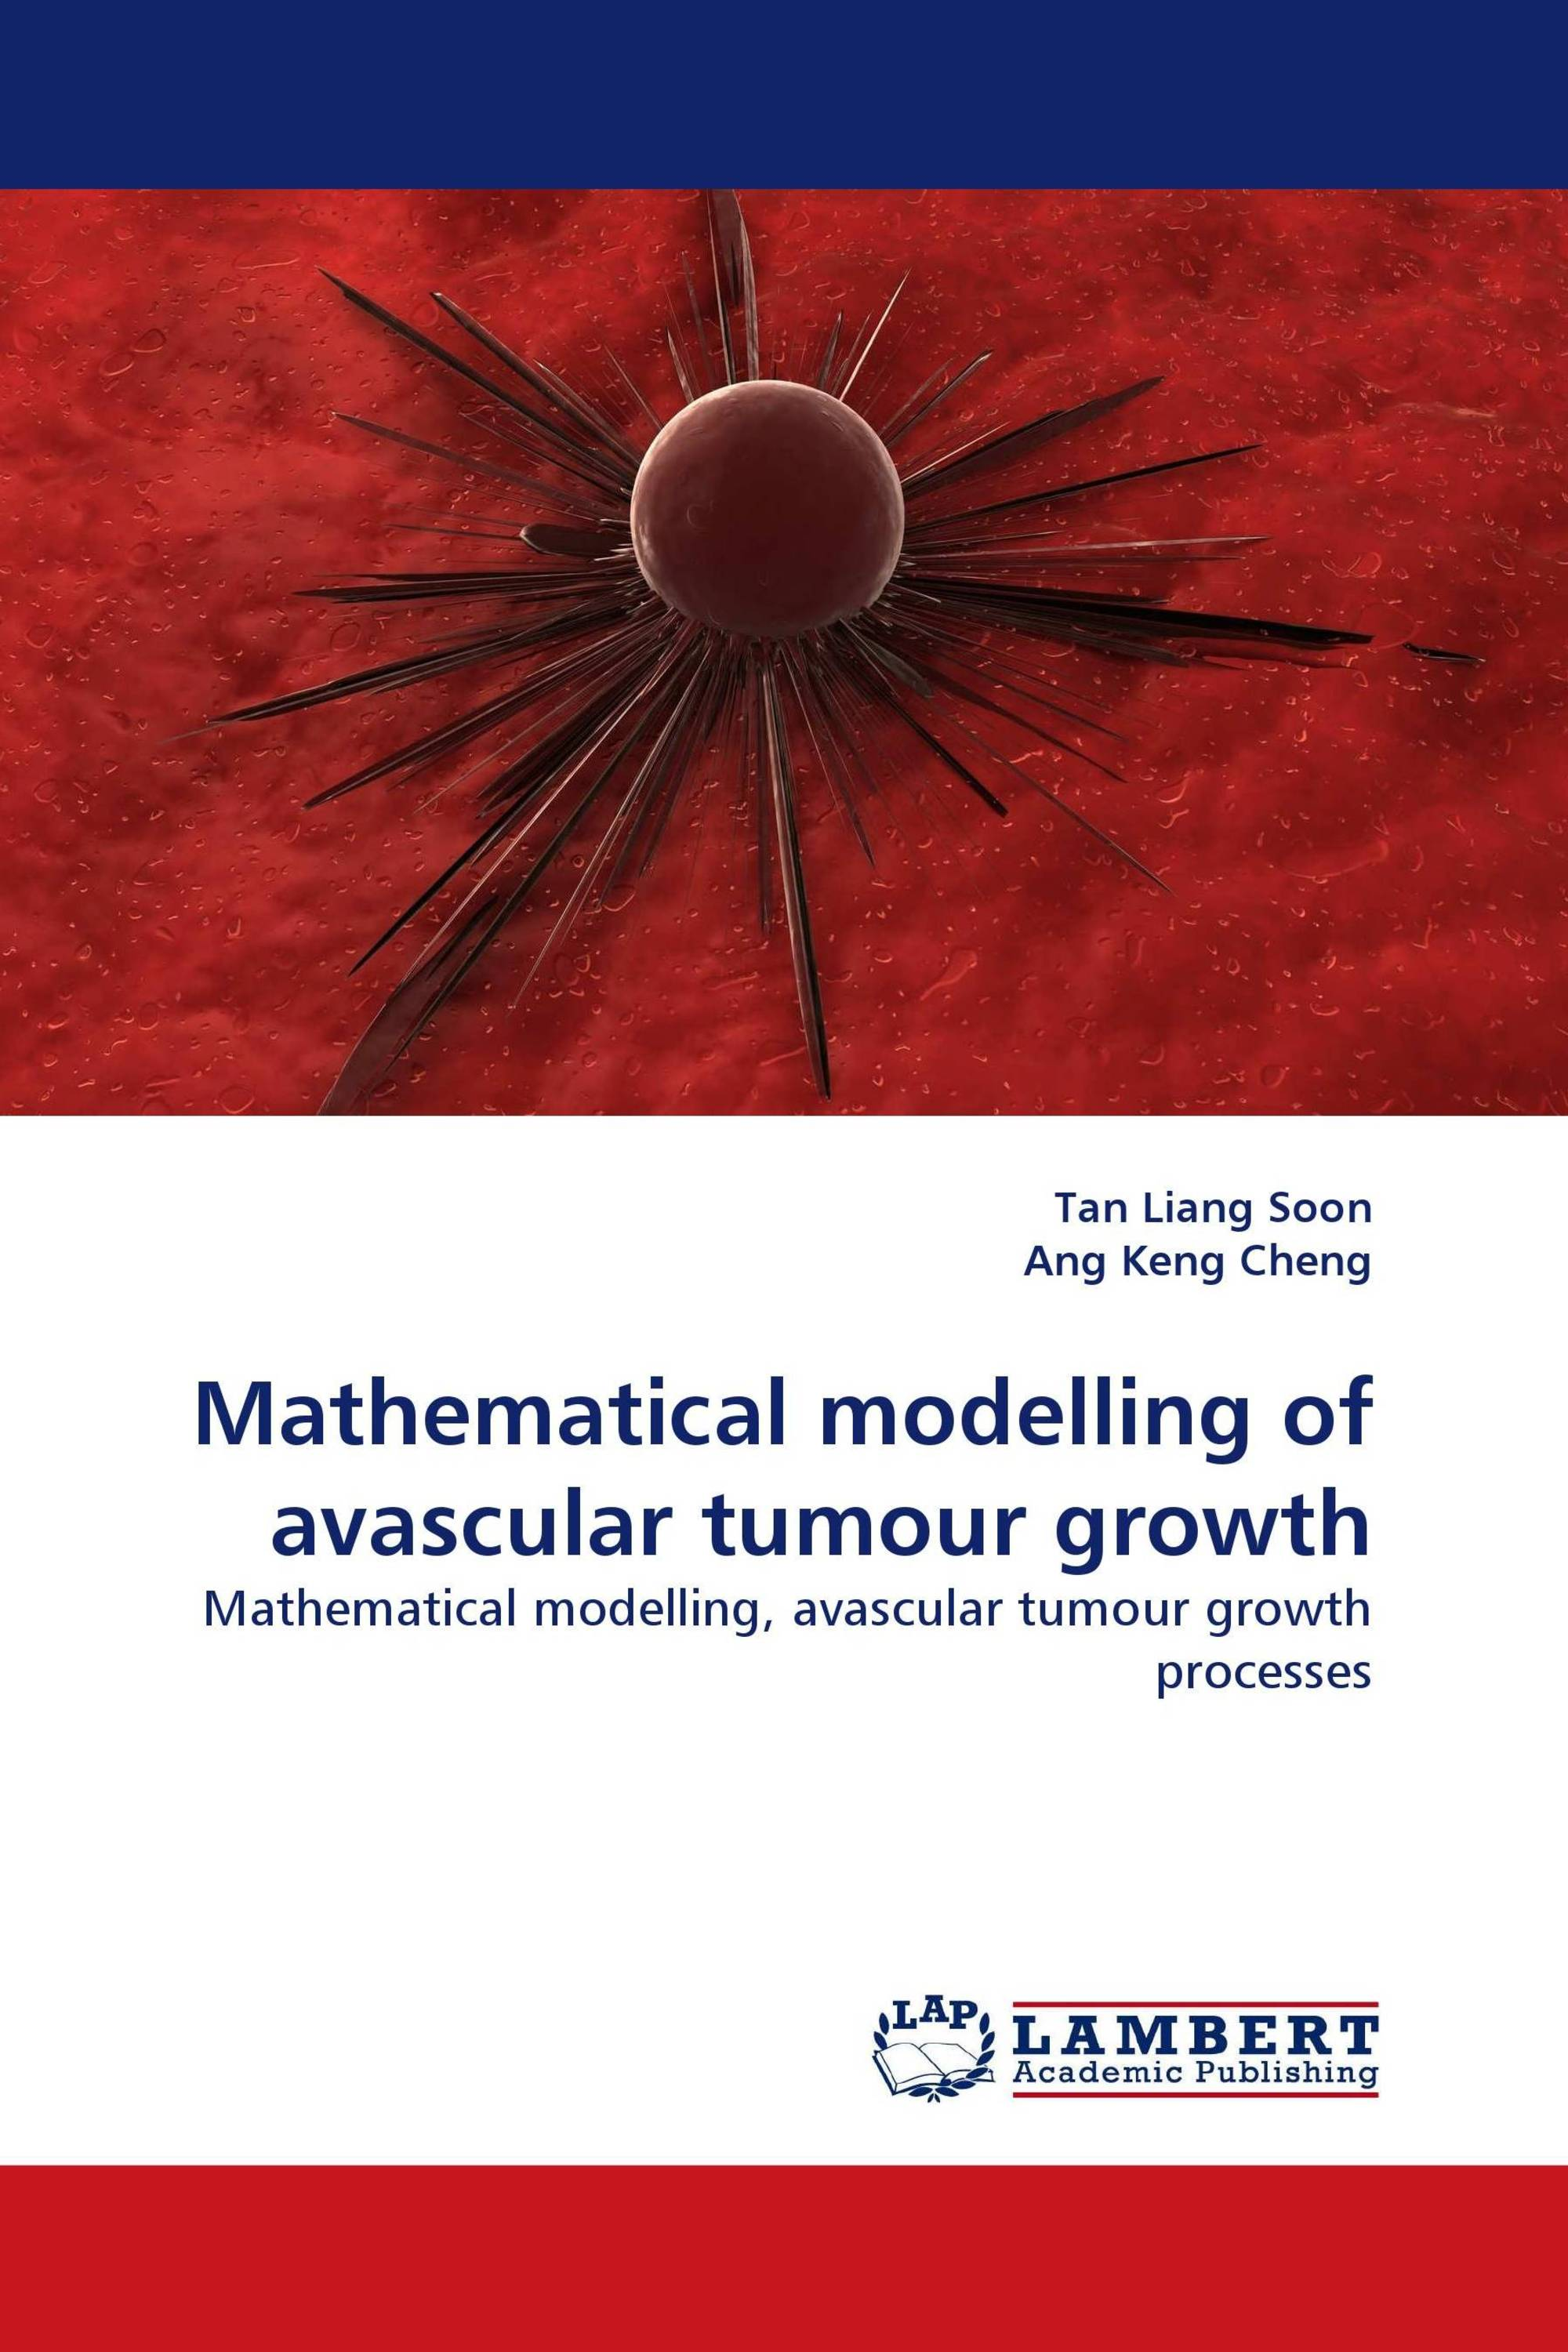 Mathematical modelling of avascular tumour growth